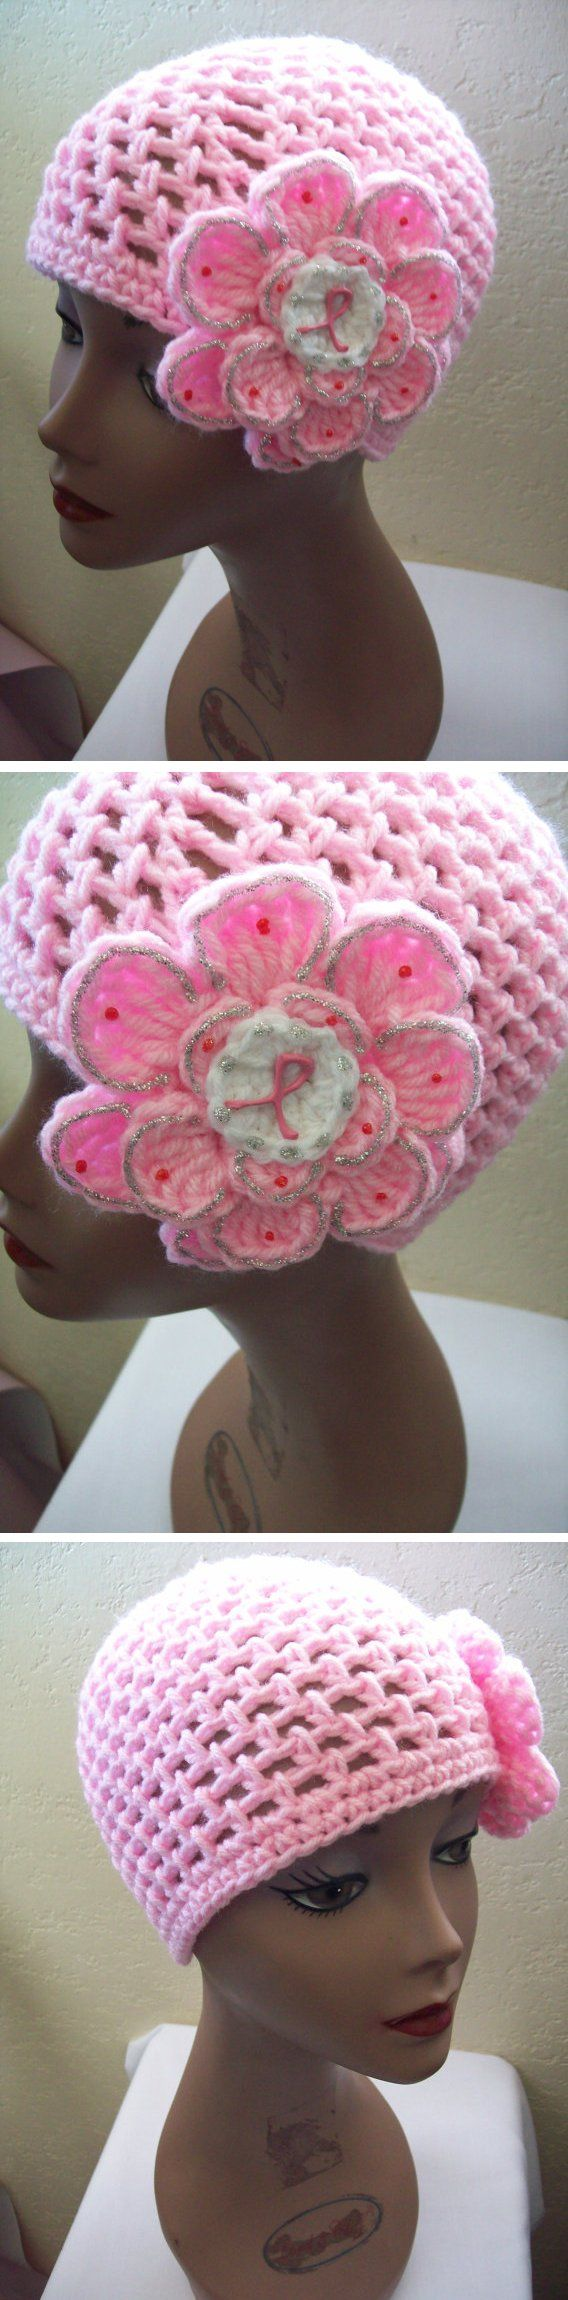 Breast Cancer Awareness Hat - *Inspiration* Easy Peasy, pink mesh hat with large flower. Make an extra white circle for the center of the flower and paint an awareness ribbon on it with dimensional paint.